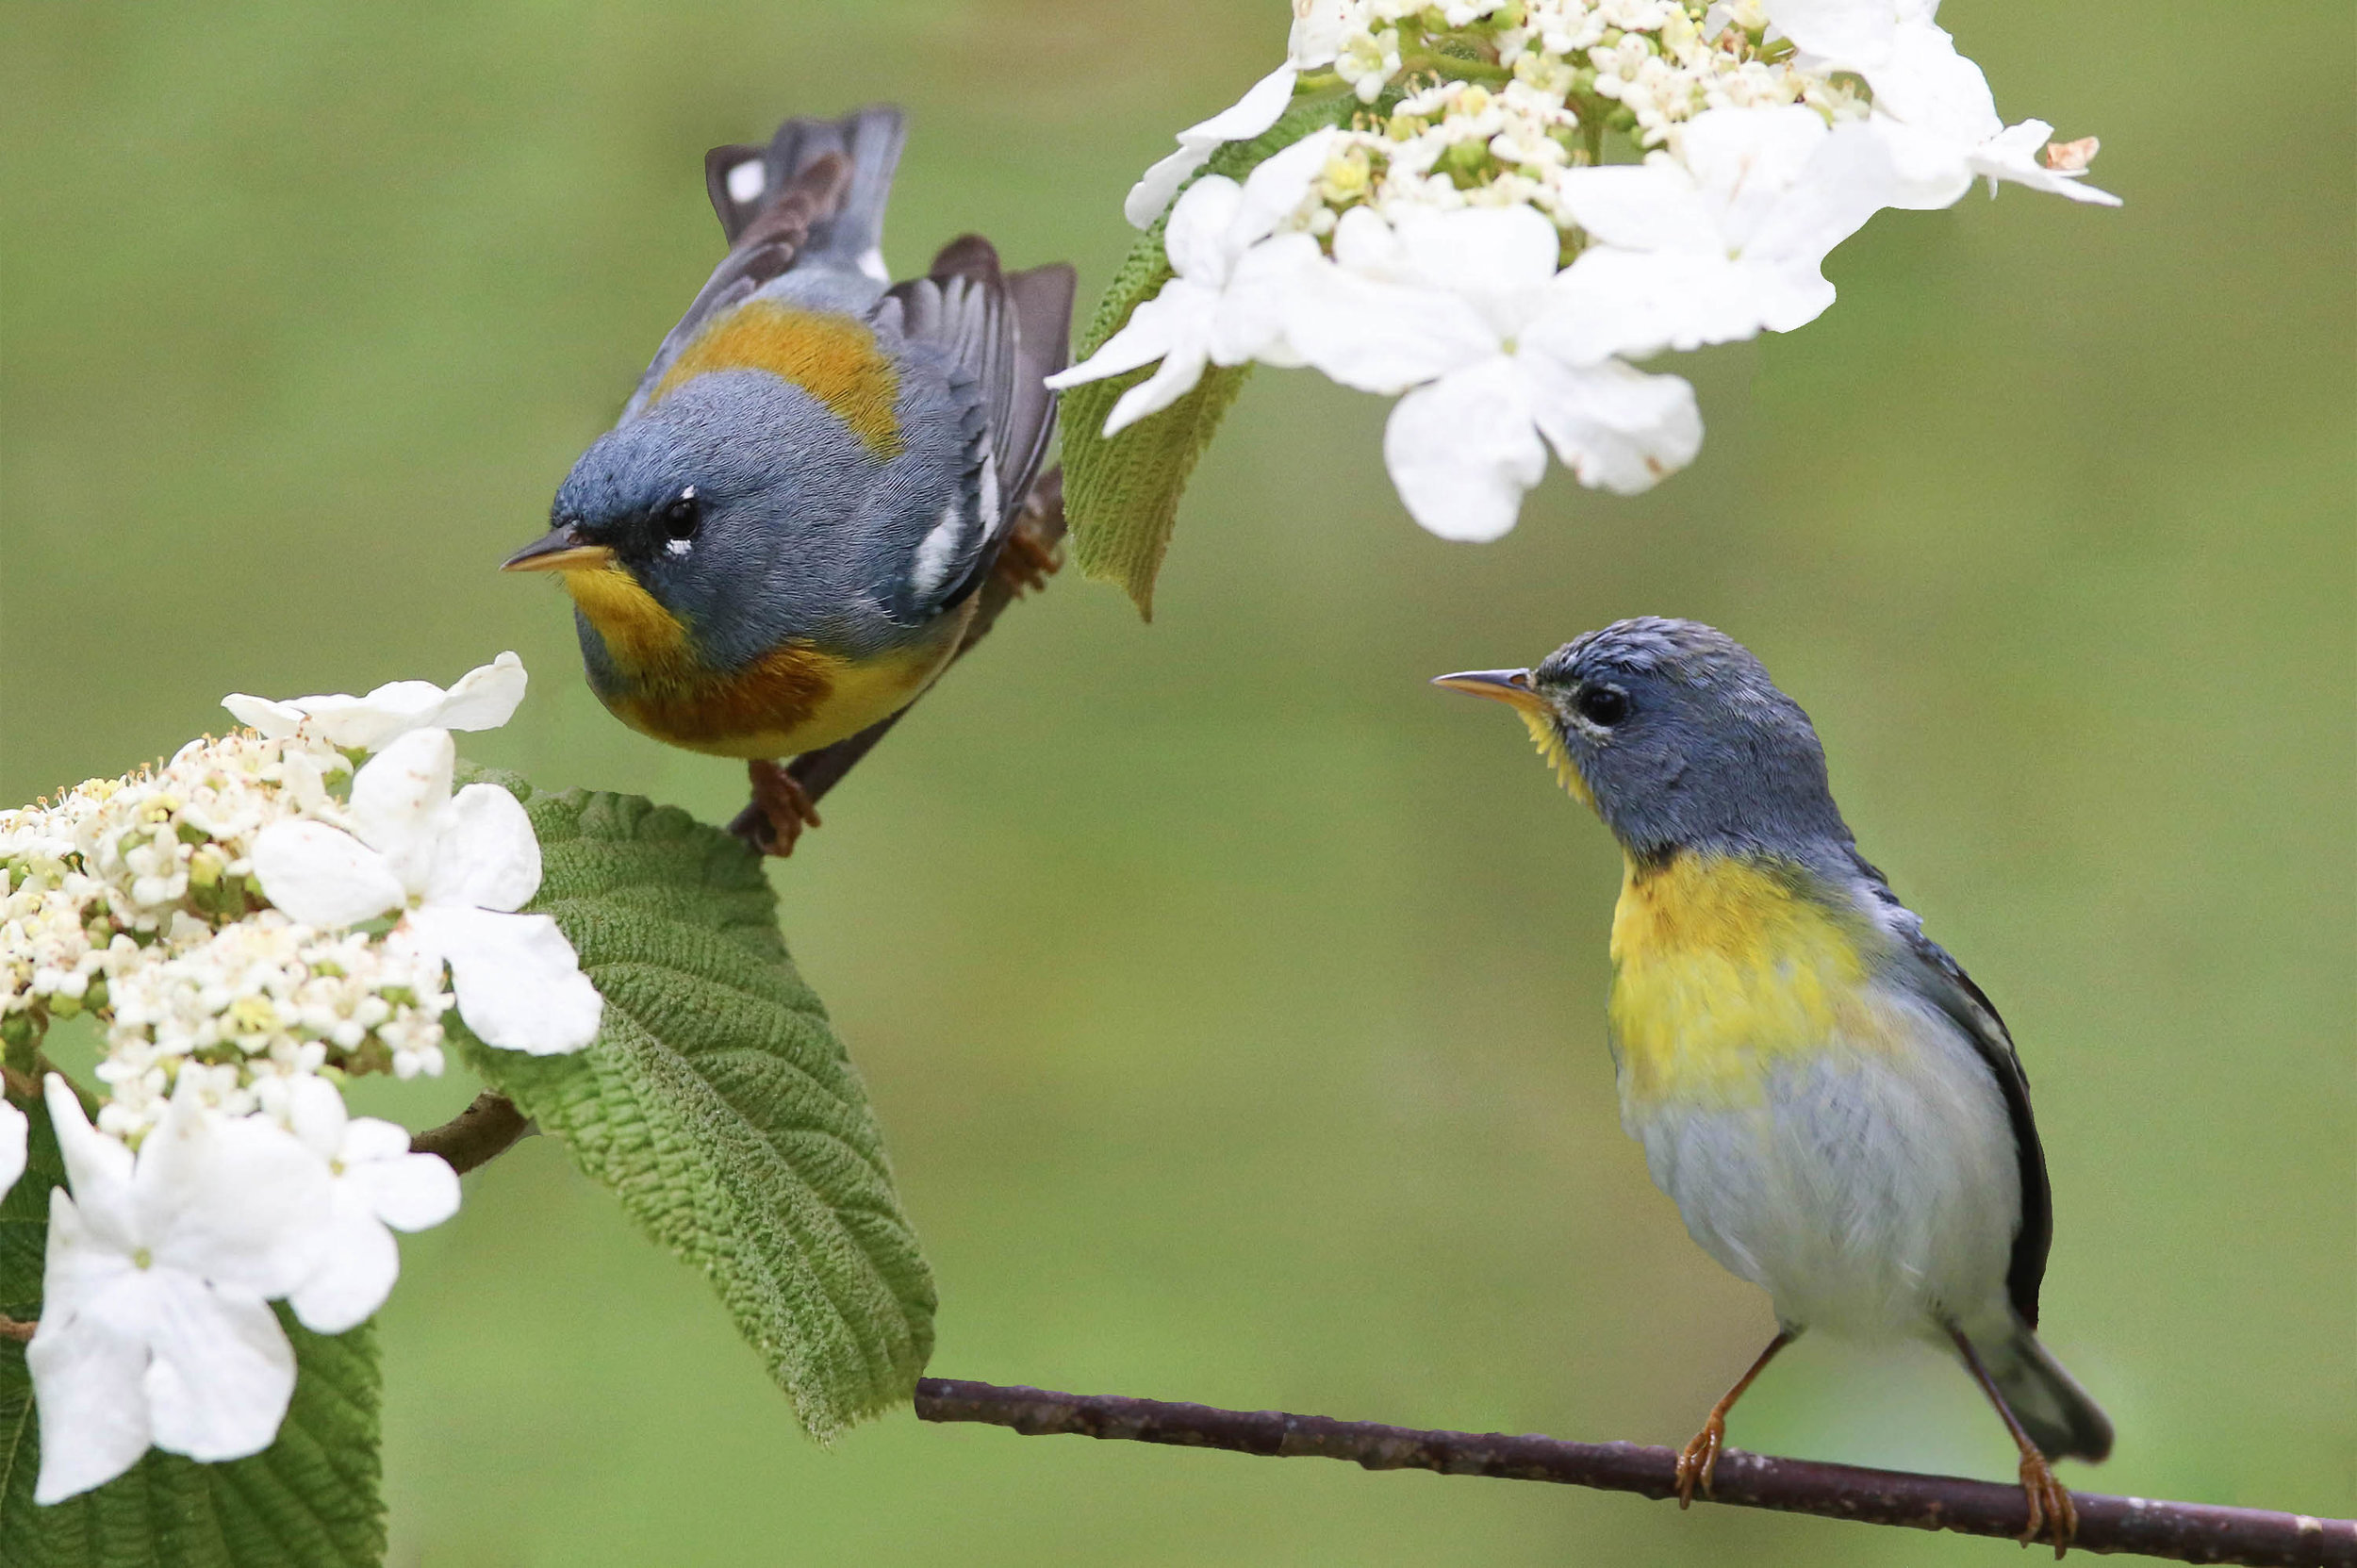 Northern Parula   One of the first warblers to arrive in spring. This pair was photographed foraging on a blooming hobblebush just off the Blue Ridge Parkway.